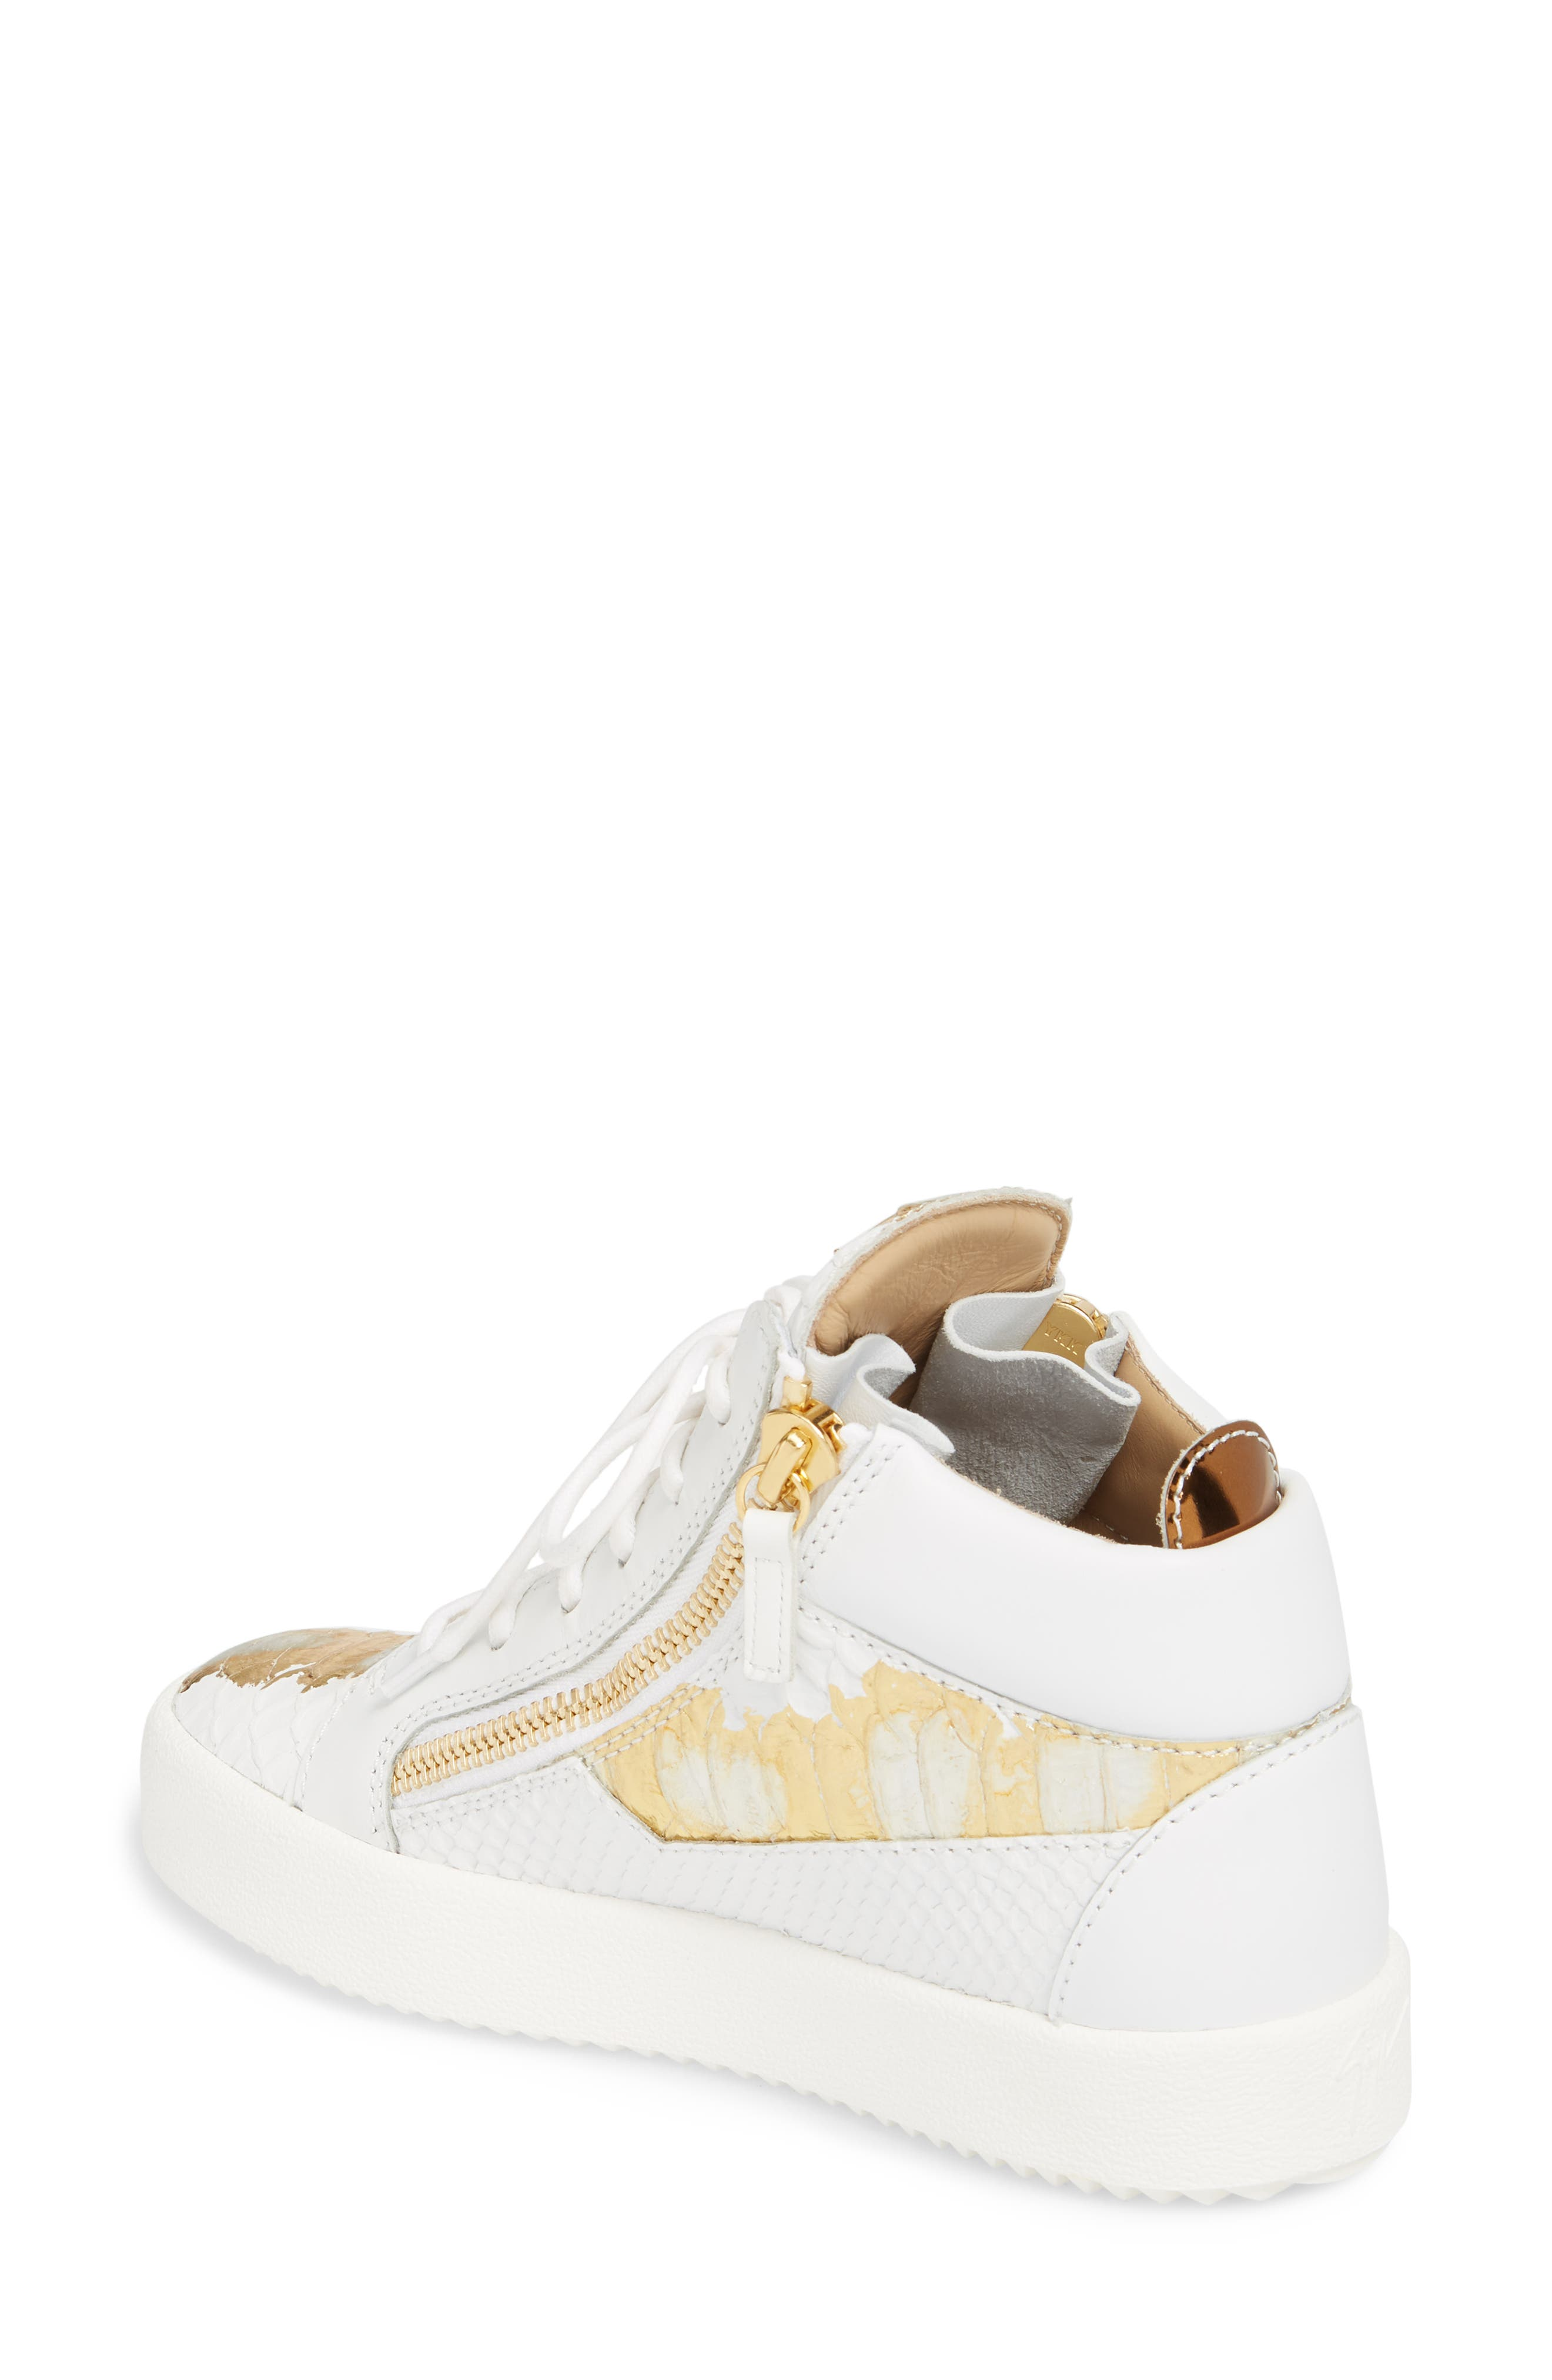 May London Mid Top Sneaker,                             Alternate thumbnail 2, color,                             White/ Gold